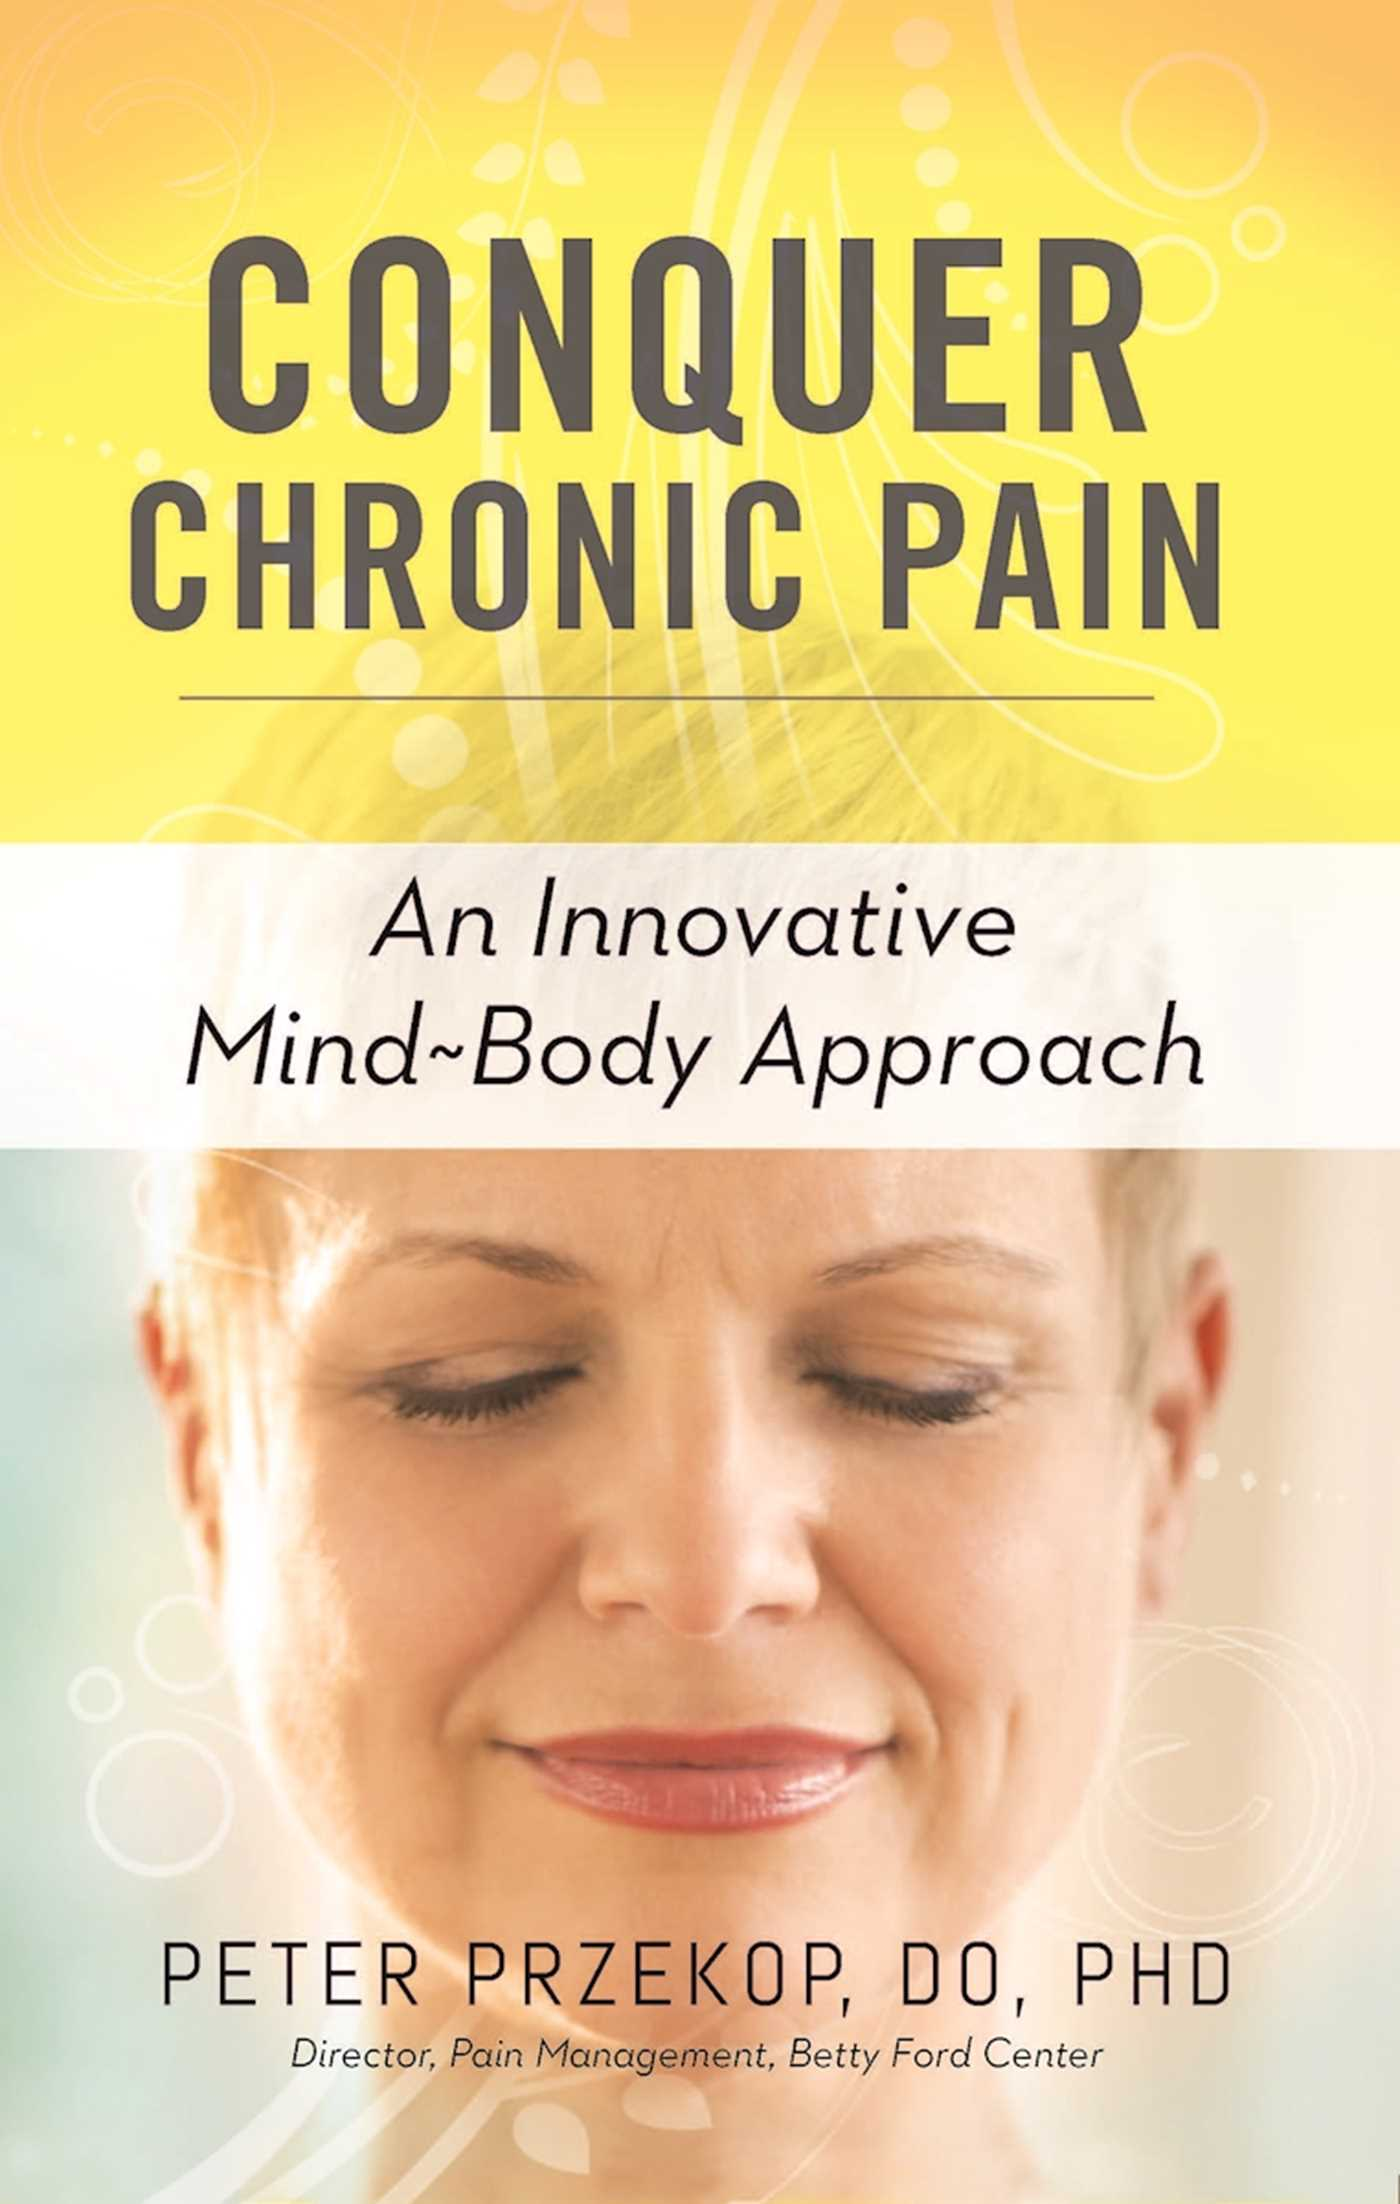 Conquer Chronic Pain An Innovative Mind-Body Approach